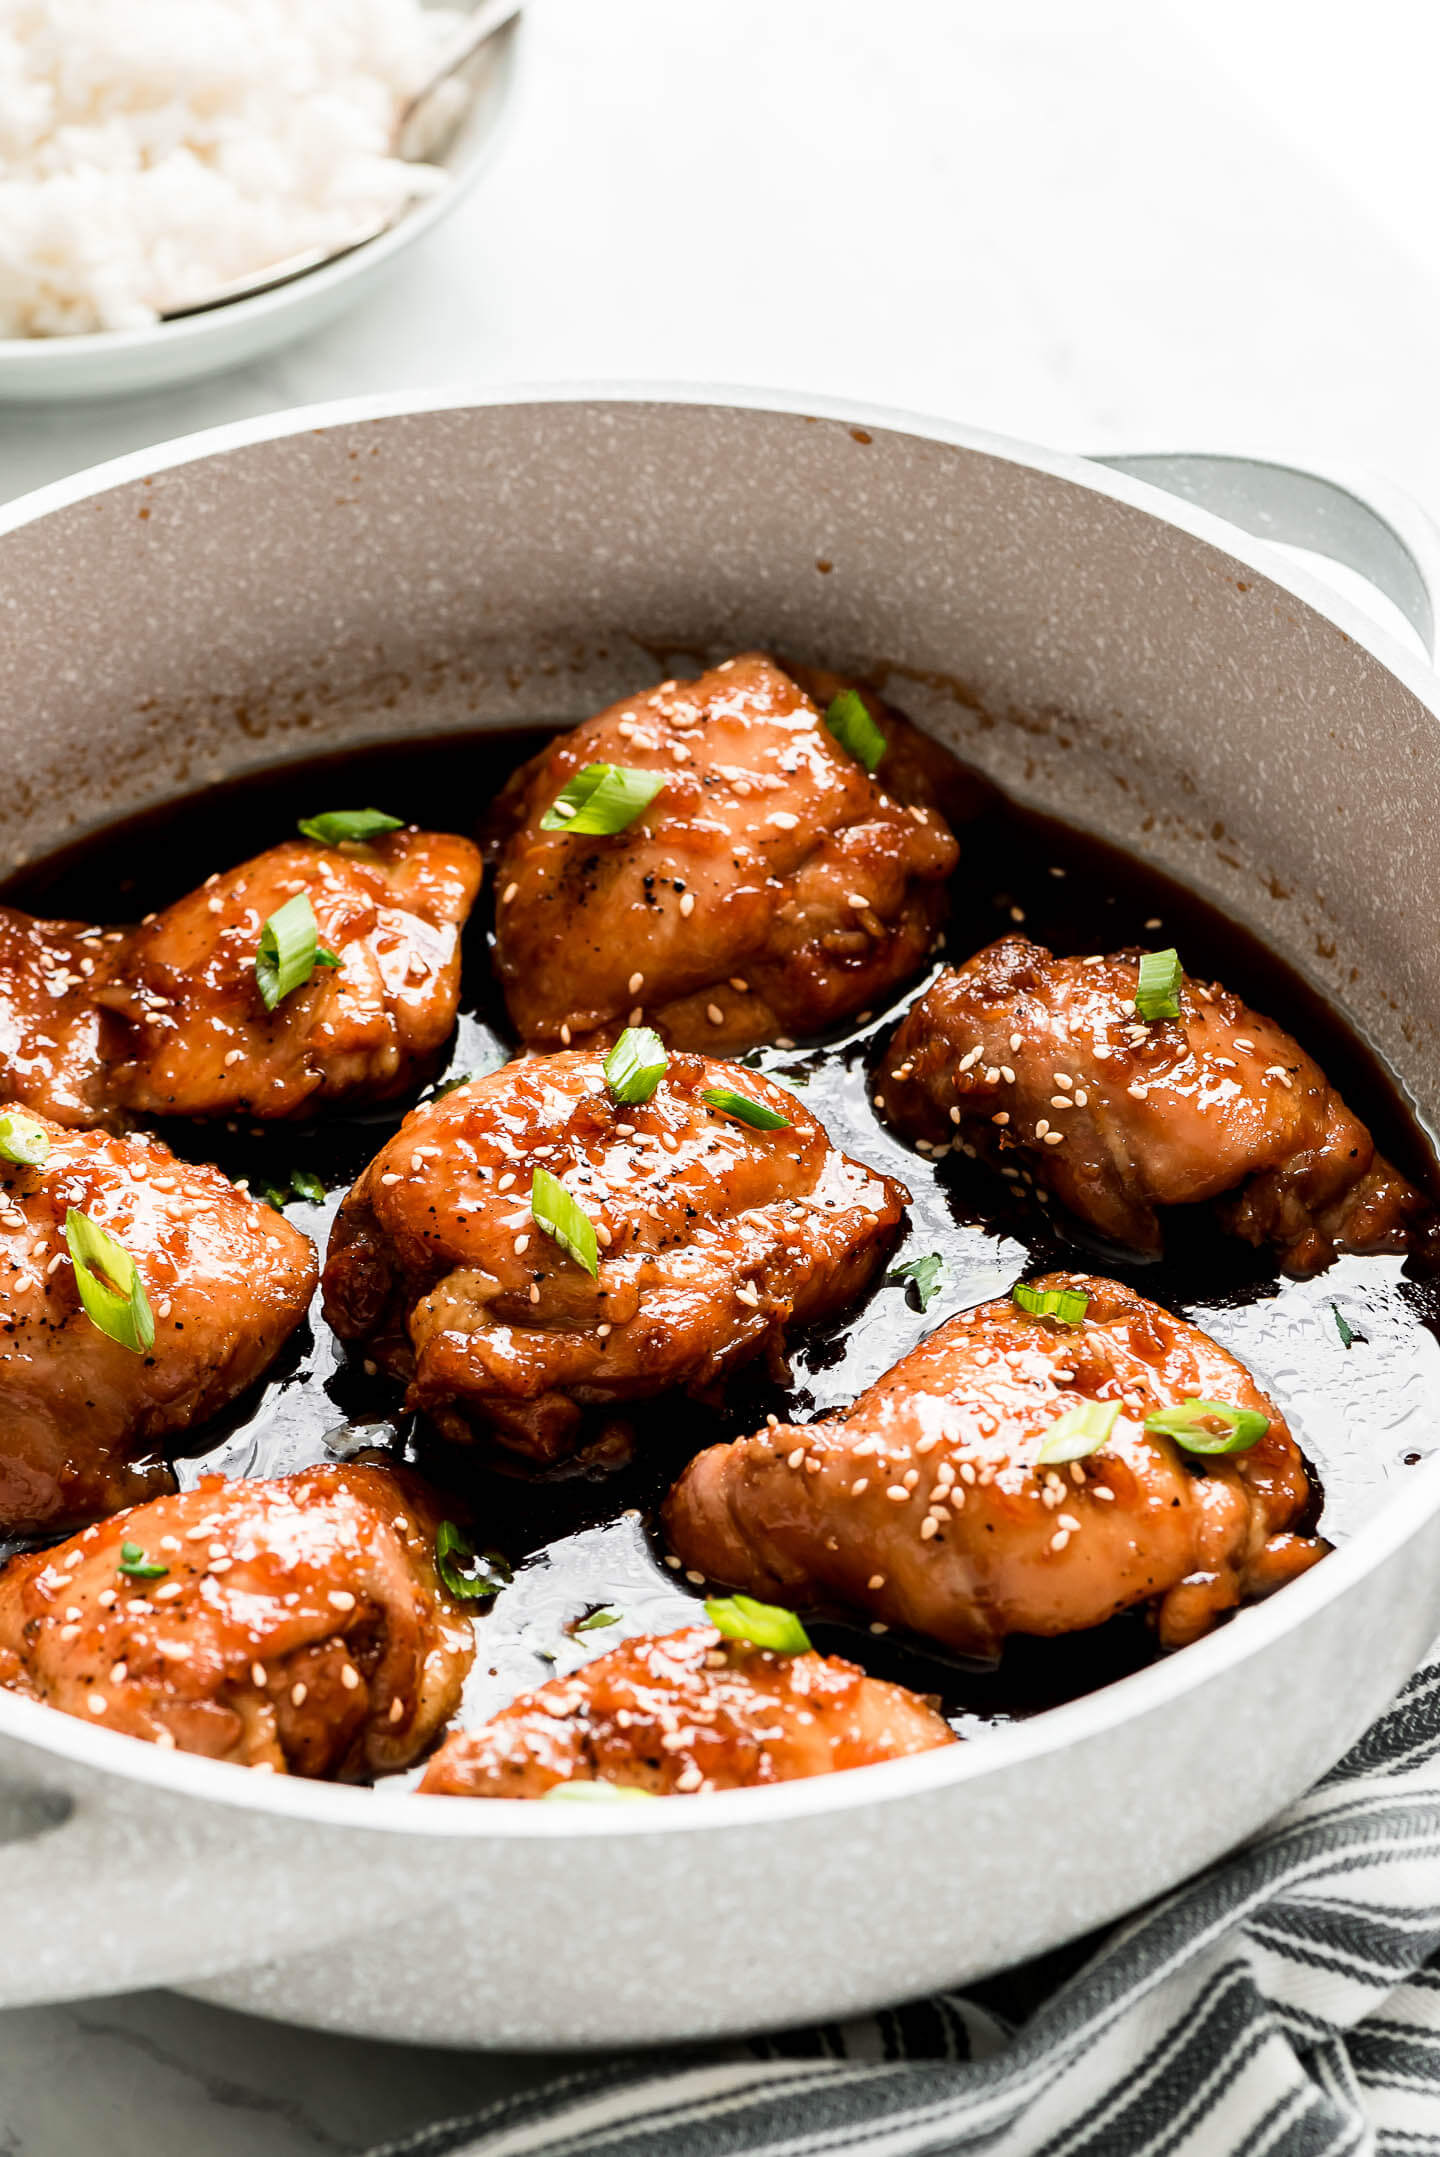 Teriyaki Chicken Thighs in a pan with sauce and garnished with sesame seeds and green onions.